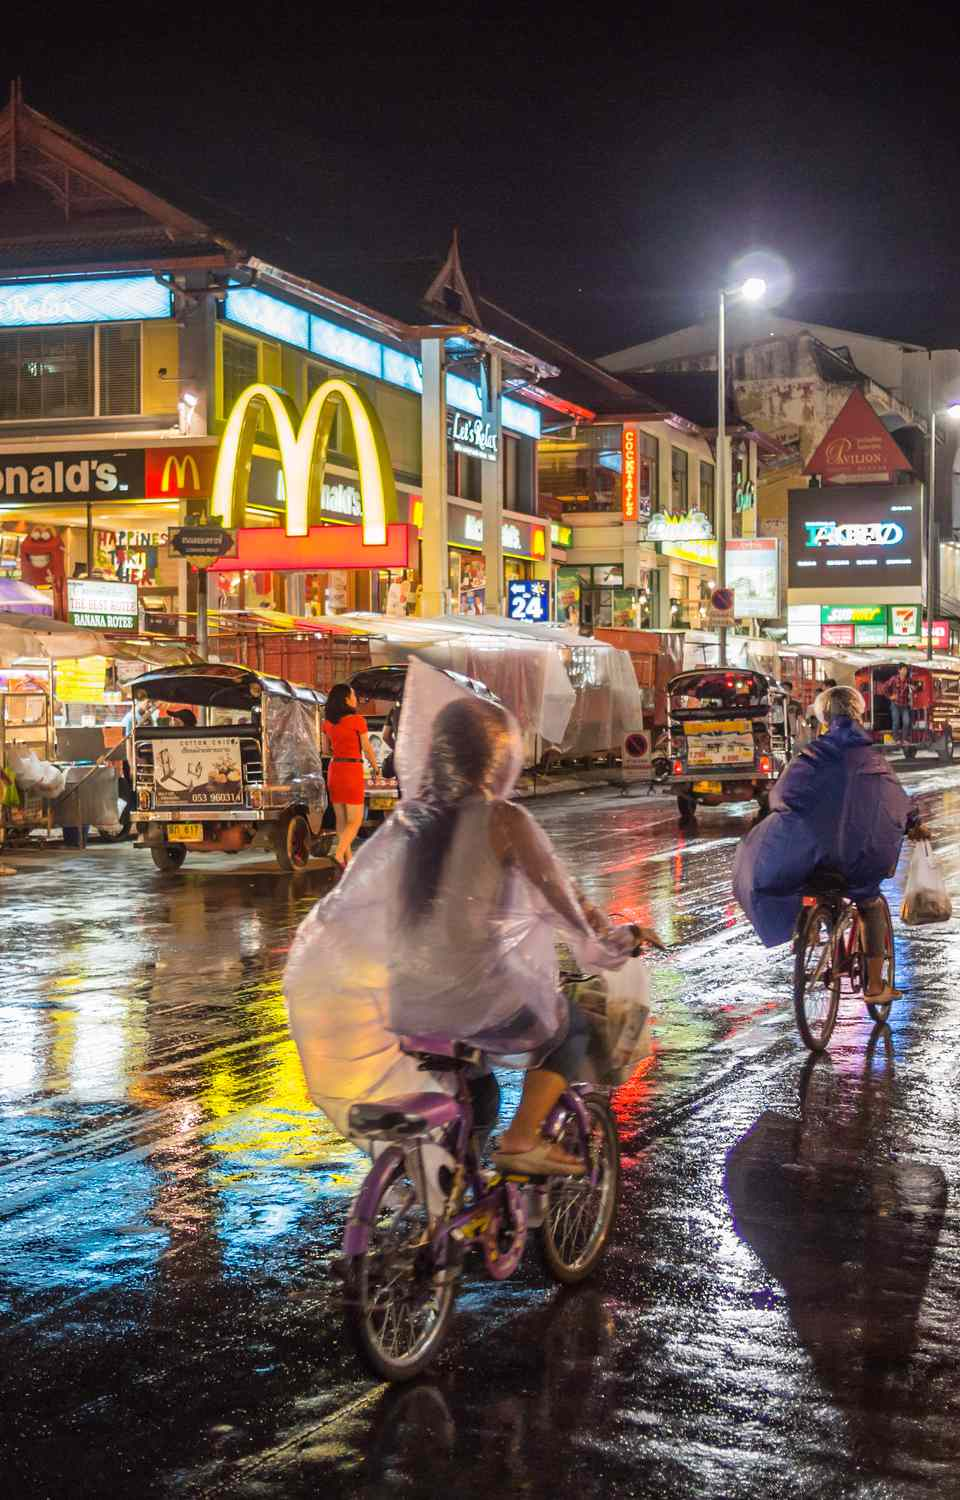 Rainy Night in Chiang Mai